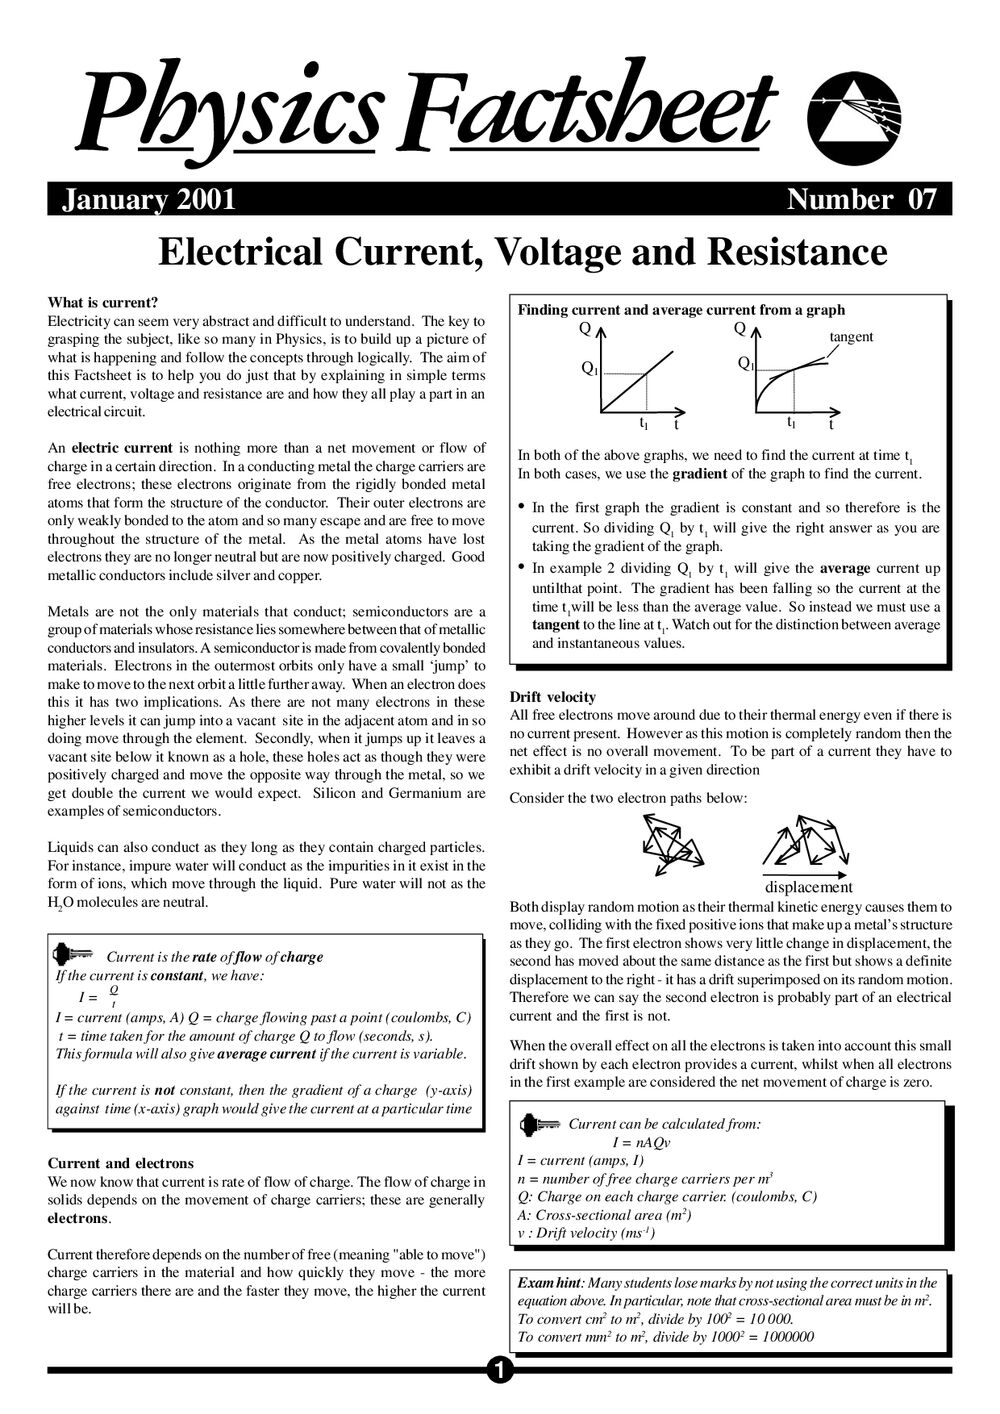 Electric Current, Voltage and Resistance - Curriculum Press